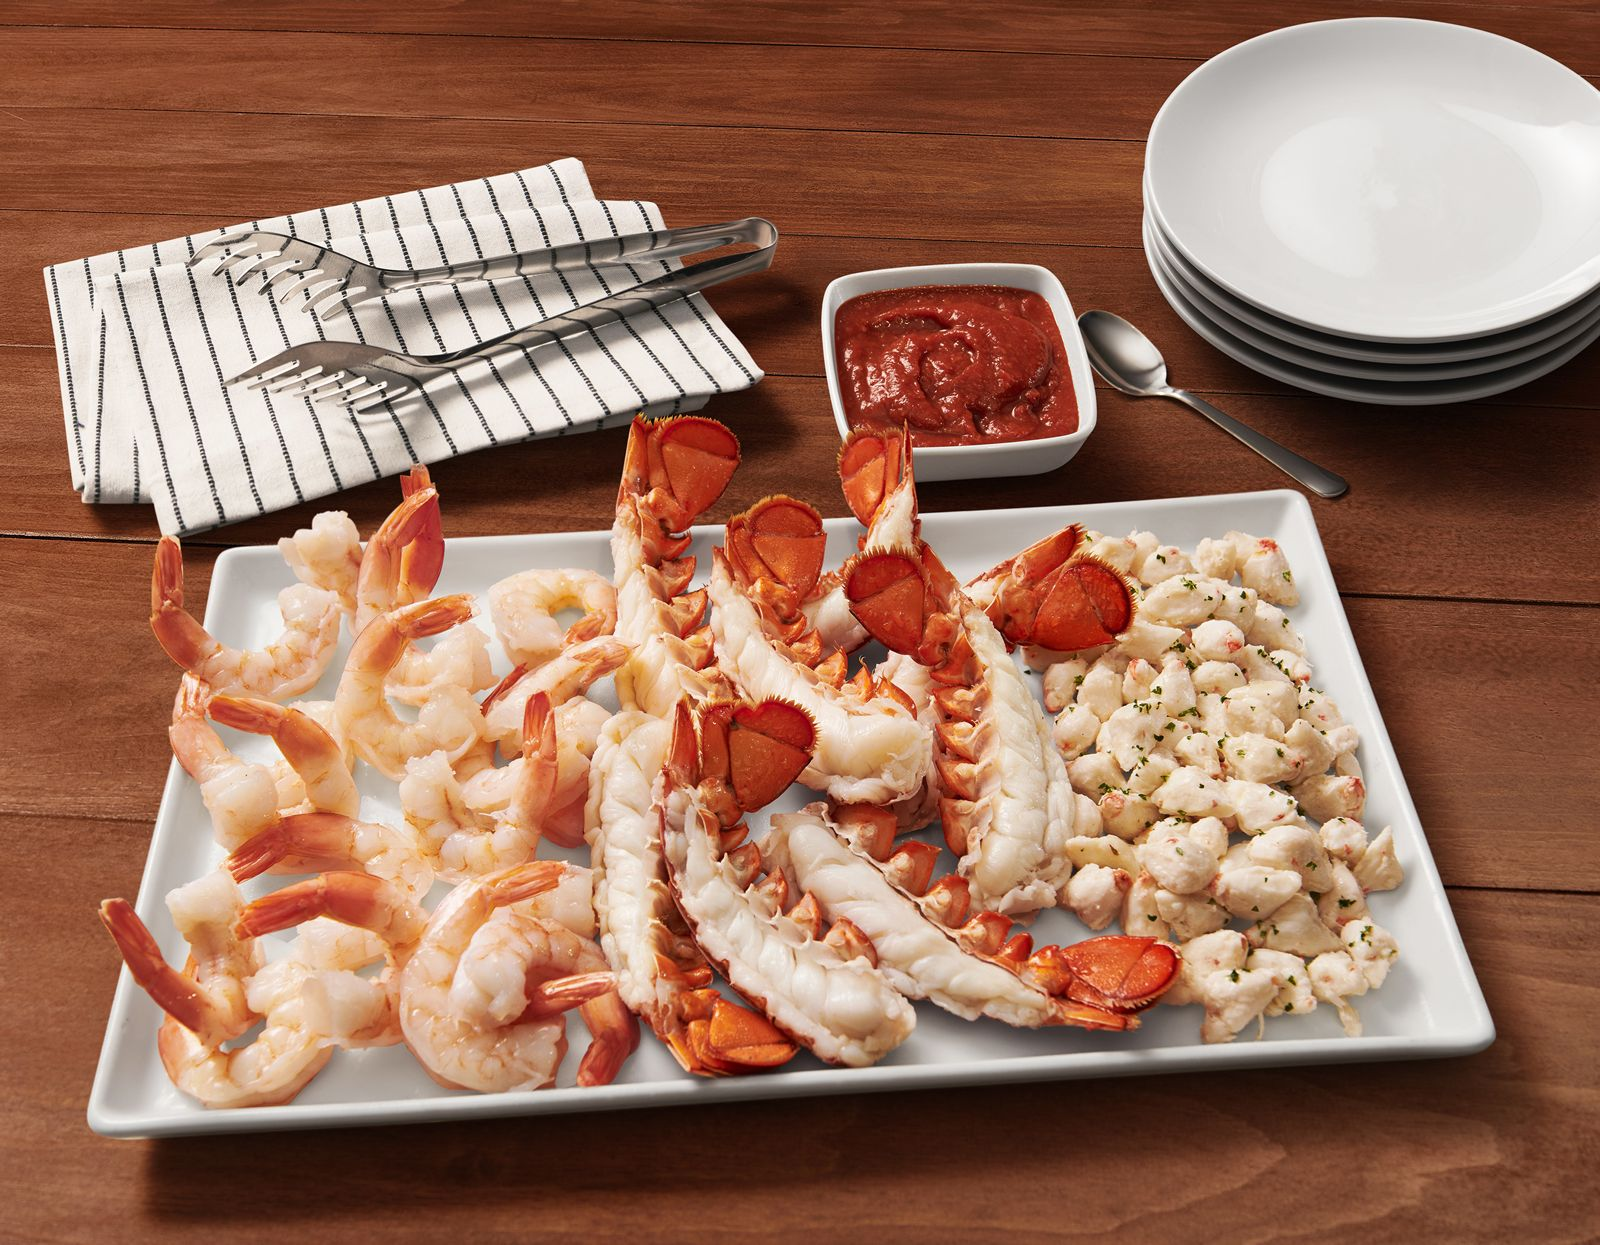 Red Lobster Releases the Hottest Gift For The Holidays - Limited-Edition, Gift Boxes Filled With Cheddar Bay Biscuits